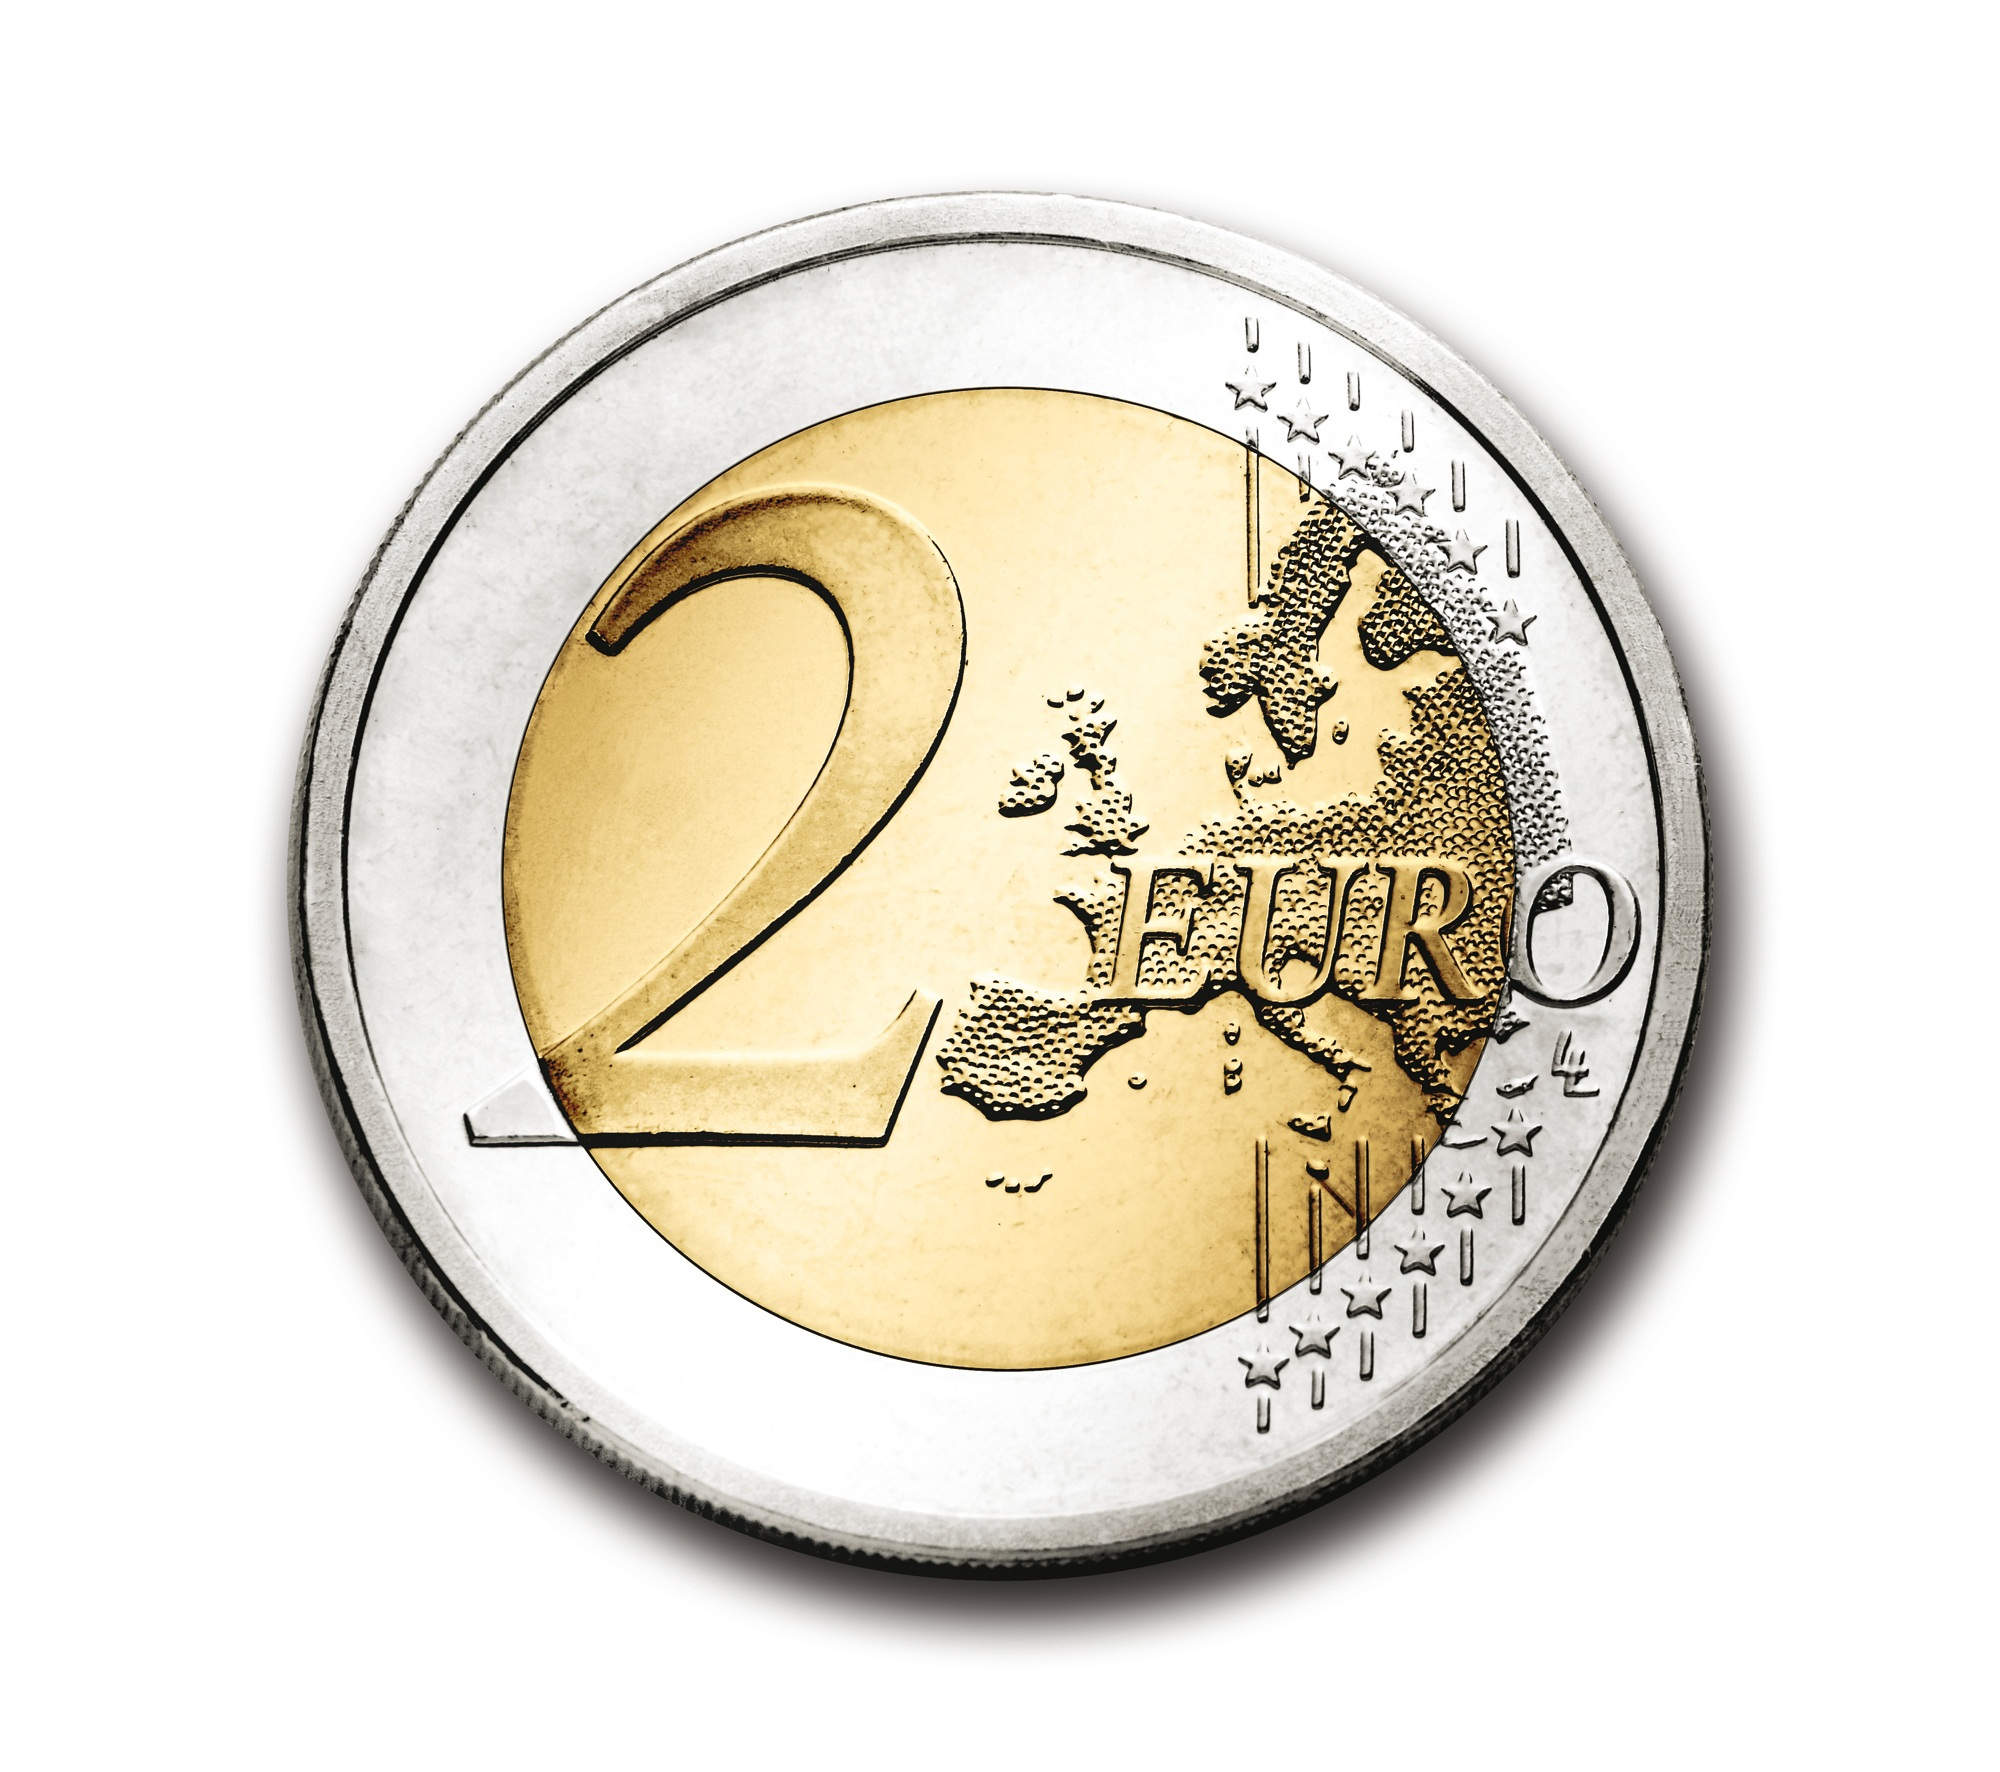 2 euro free stock photo - Piece 2 euros la plus chere ...